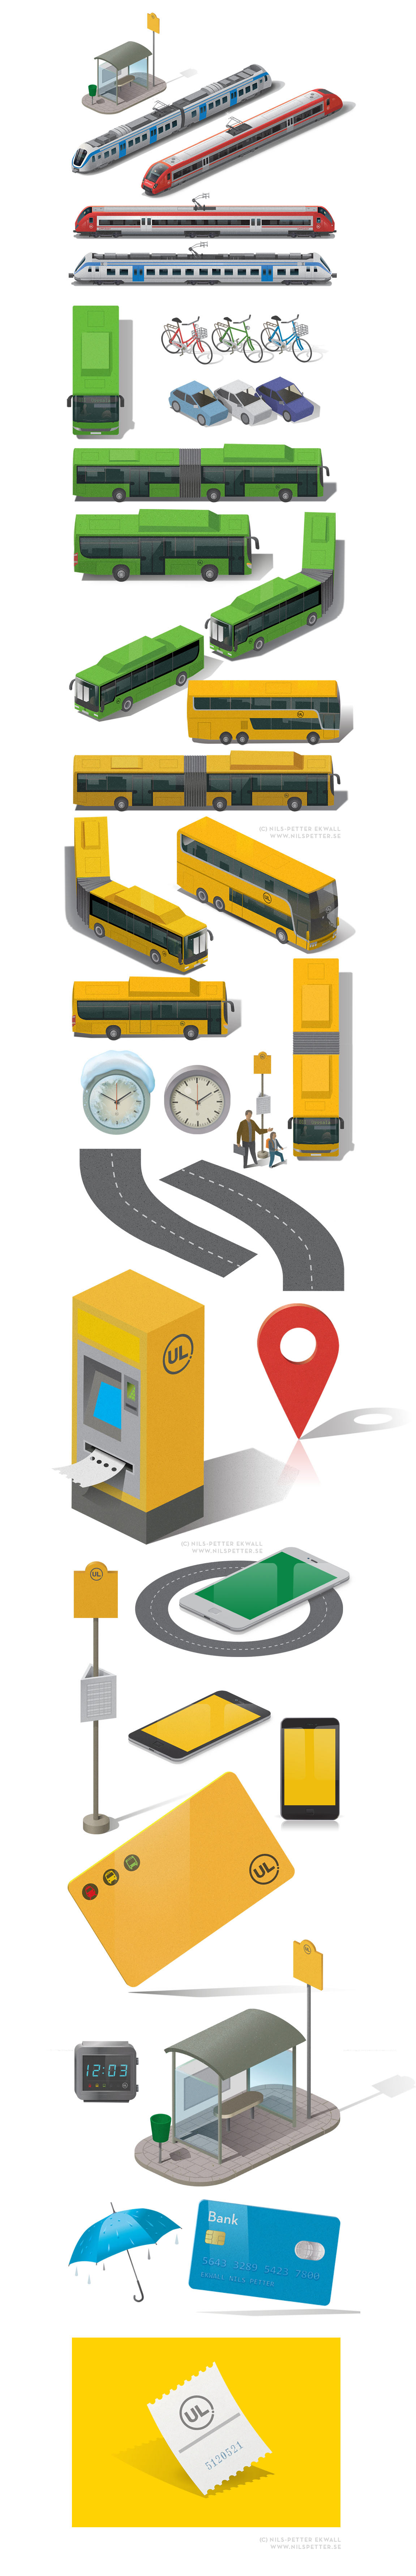 icons cityscape transportation vector Interface Web Travel Isometric graphic icon design